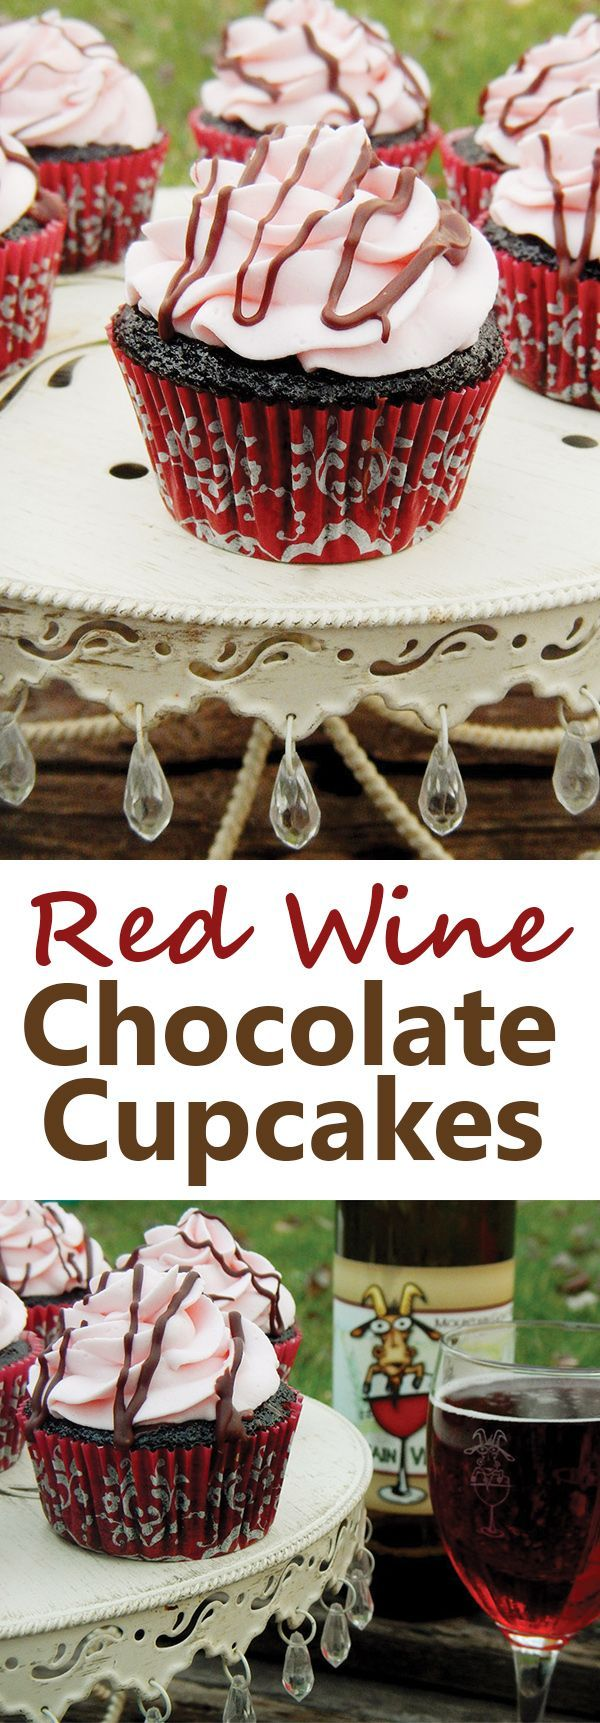 Chocolate wine cupcakes recipe. Moist chocolate cupcakes infused with sweet red wine. They're filled with red wine ganache and topped with a whipped cream-cream cheese wine frosting. A perfect Mother's Day Dessert or Valentine's Dessert.